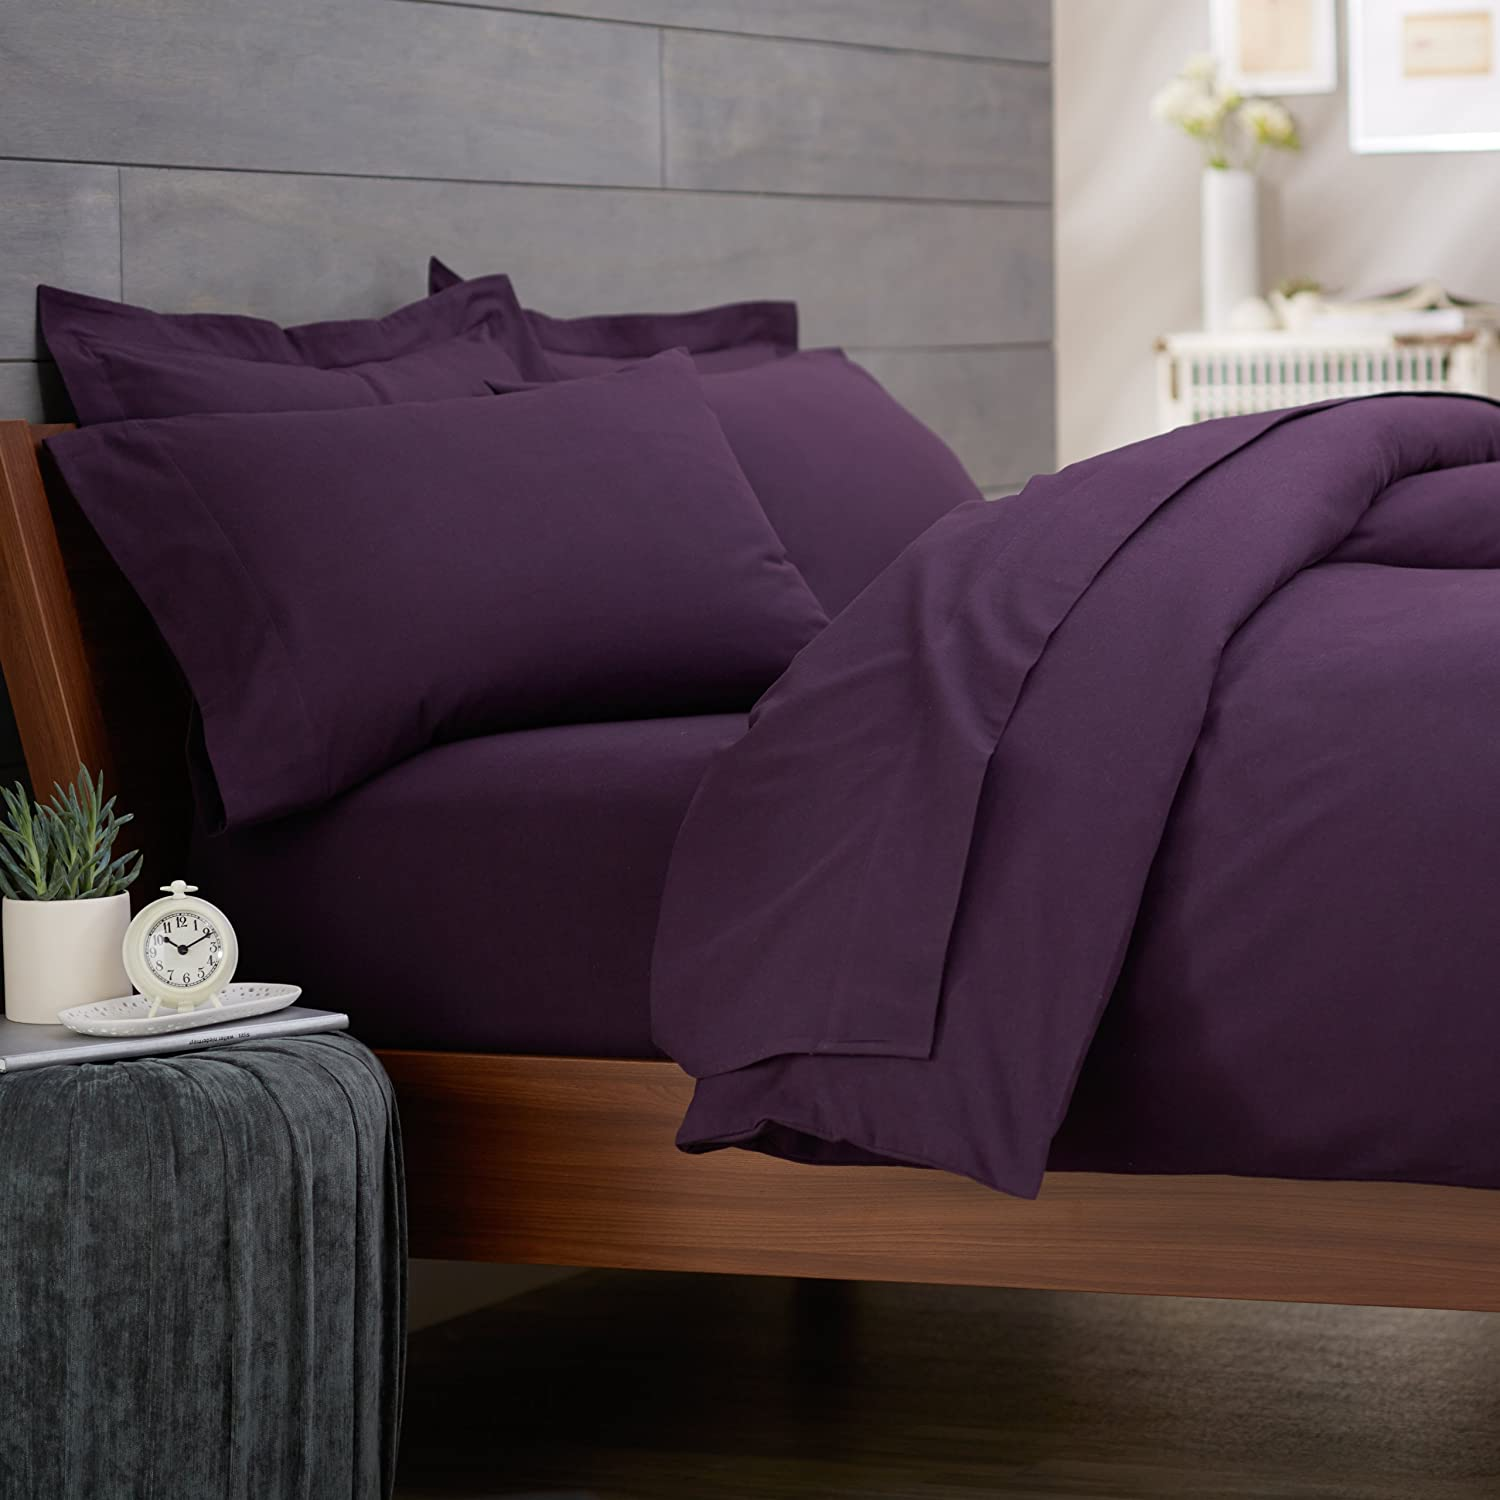 Top 10 Best Bedding Sets Table